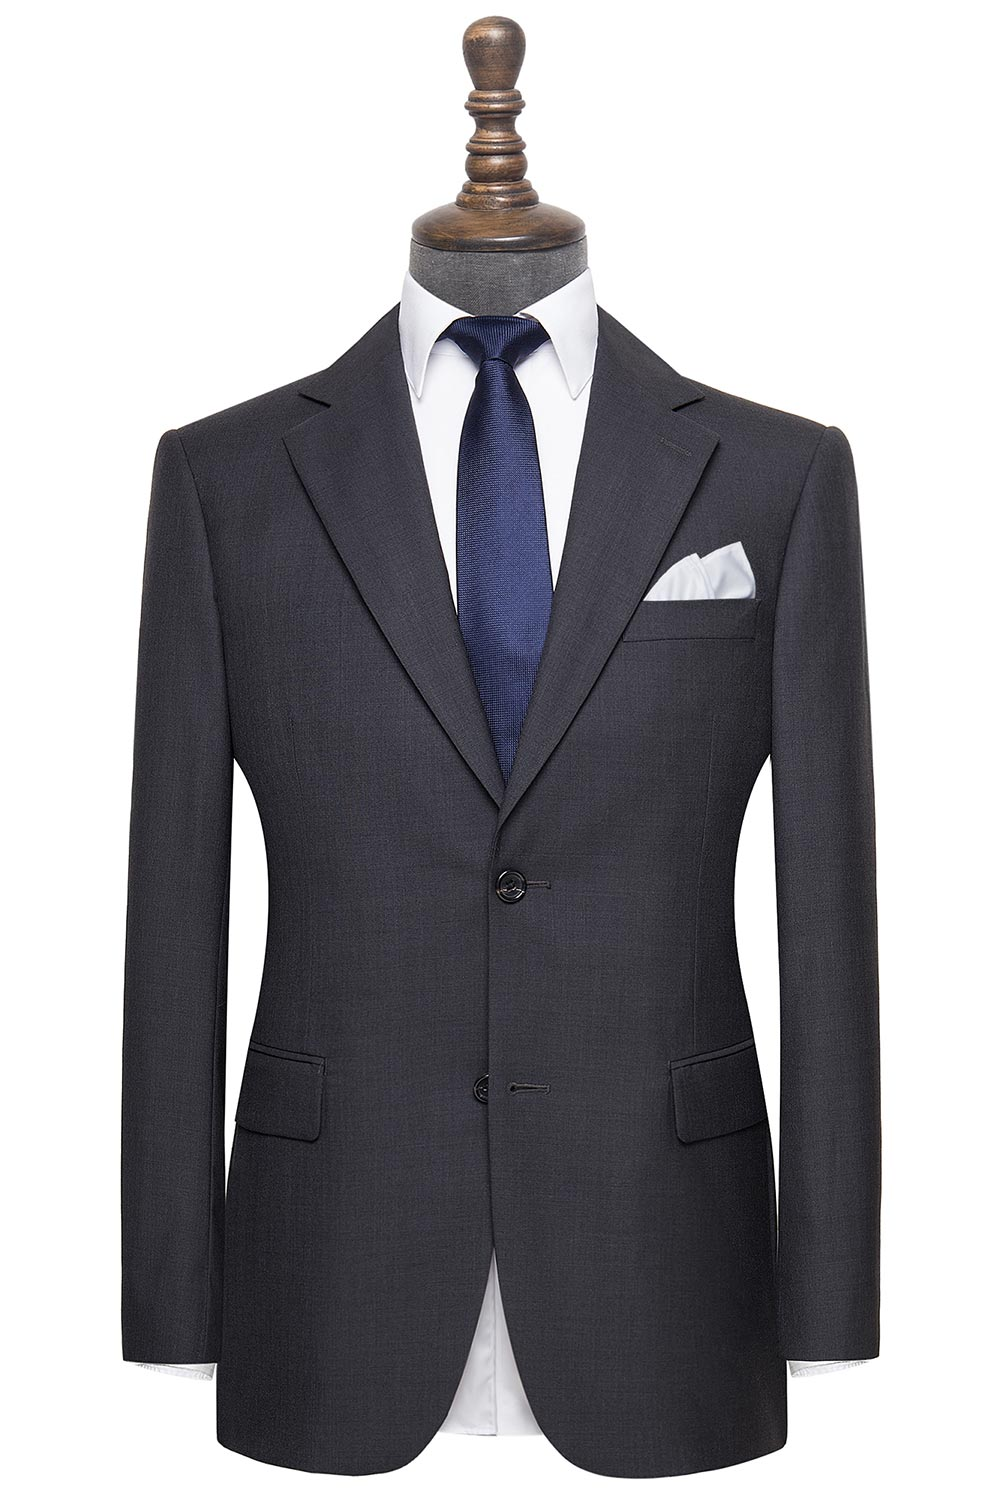 InStitchu Collection The Melrose mens suit